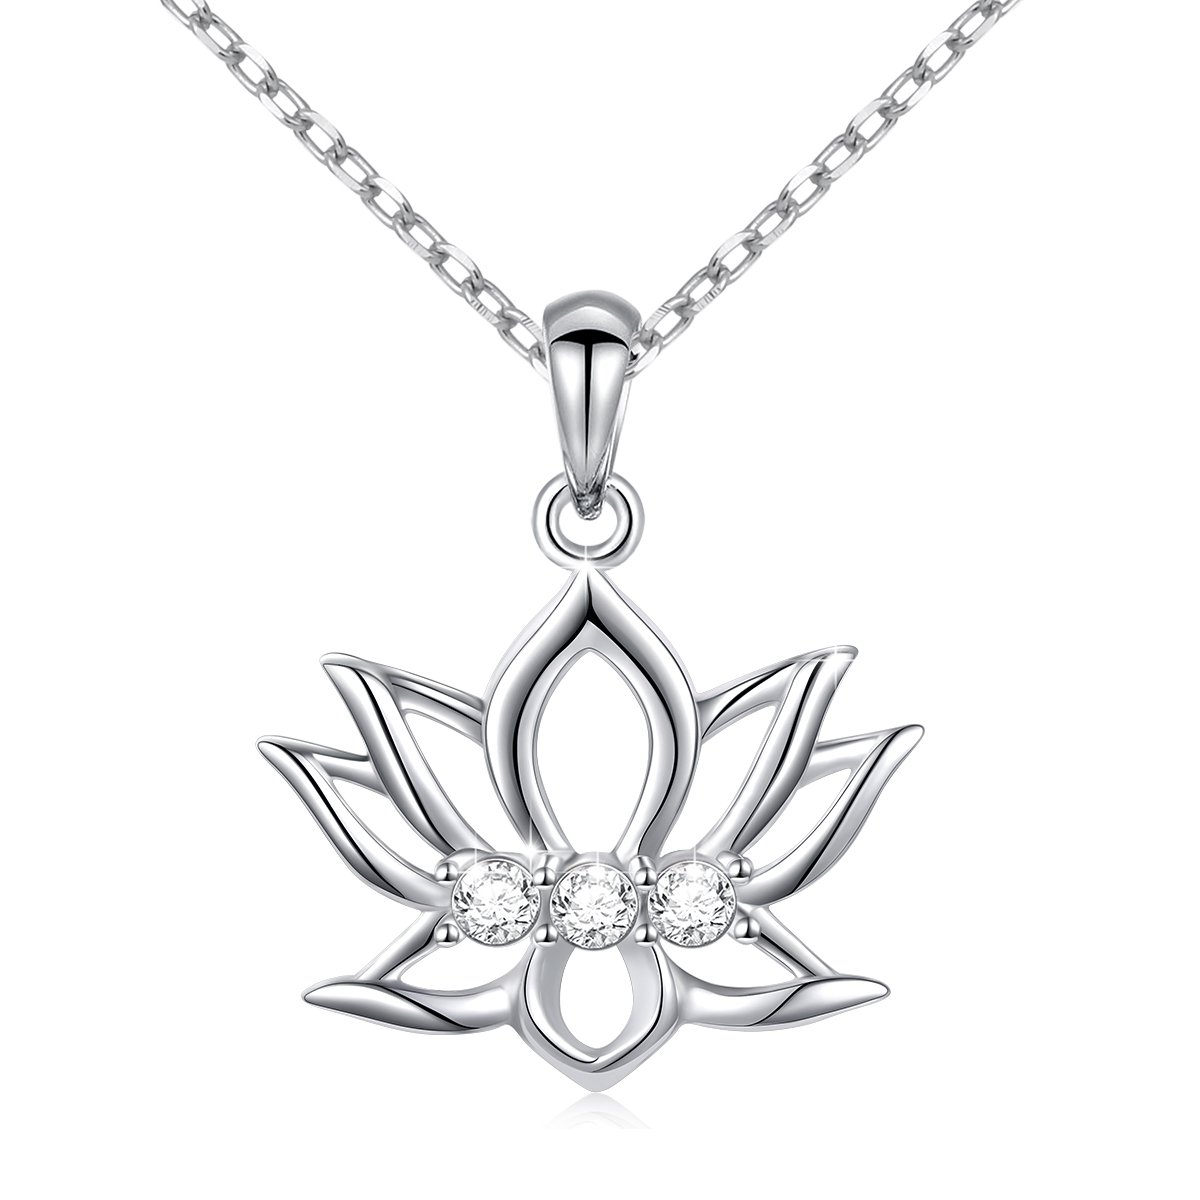 Amazon linlin fine jewelry lotus necklace 925 sterling silver amazon linlin fine jewelry lotus necklace 925 sterling silver white cz reminders new beginnings lotus pendant necklace gift for women girls izmirmasajfo